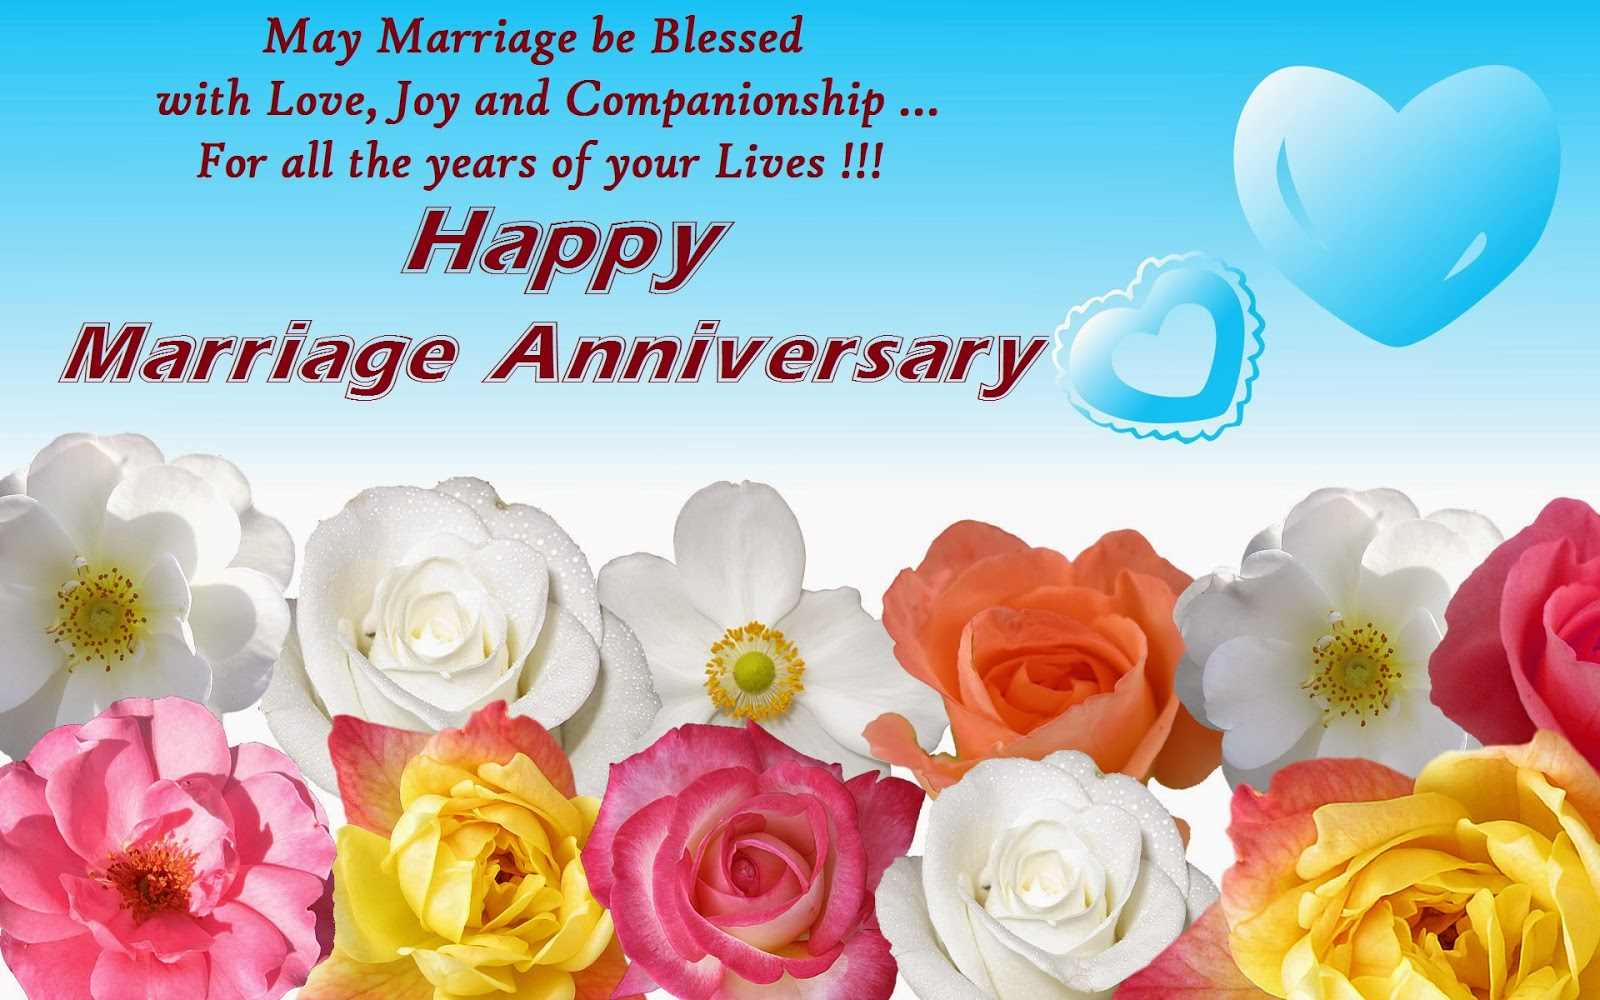 Download st marriage anniversary wishes hd cards